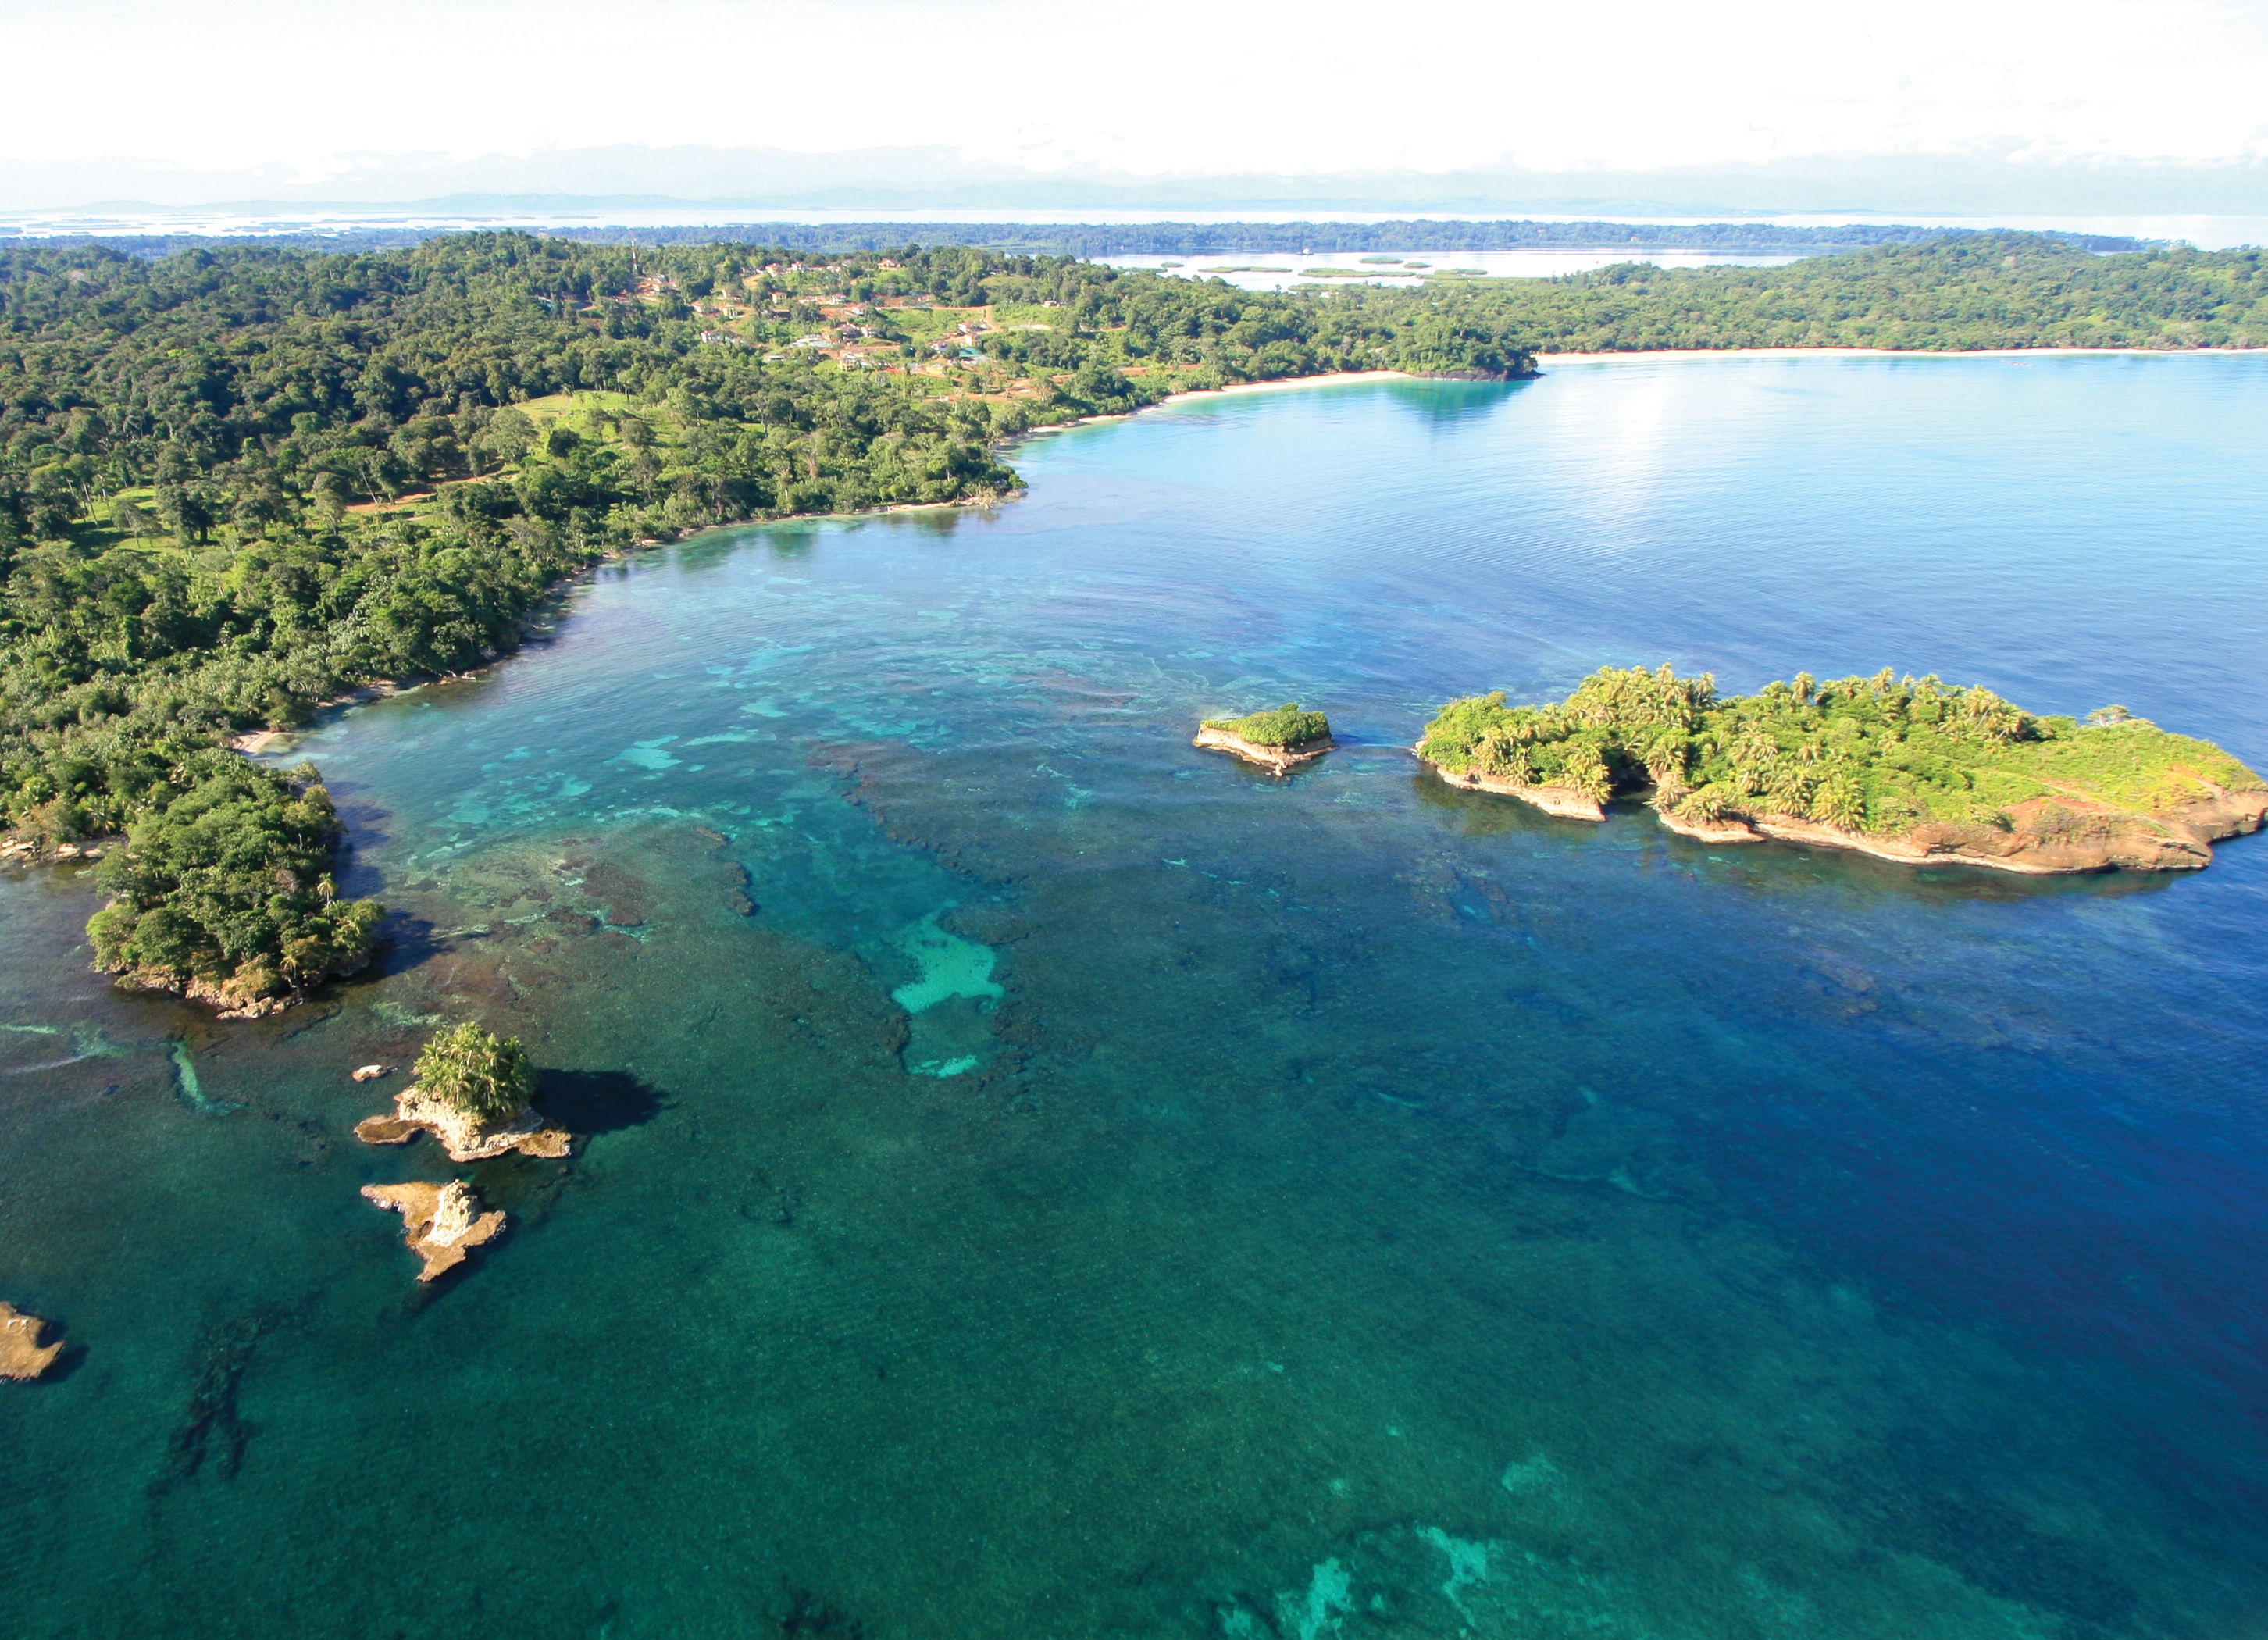 Red Frog Beach Island Resort Certified For Its: Red Frog Beach Marina In Isla Bastimentos, Panama